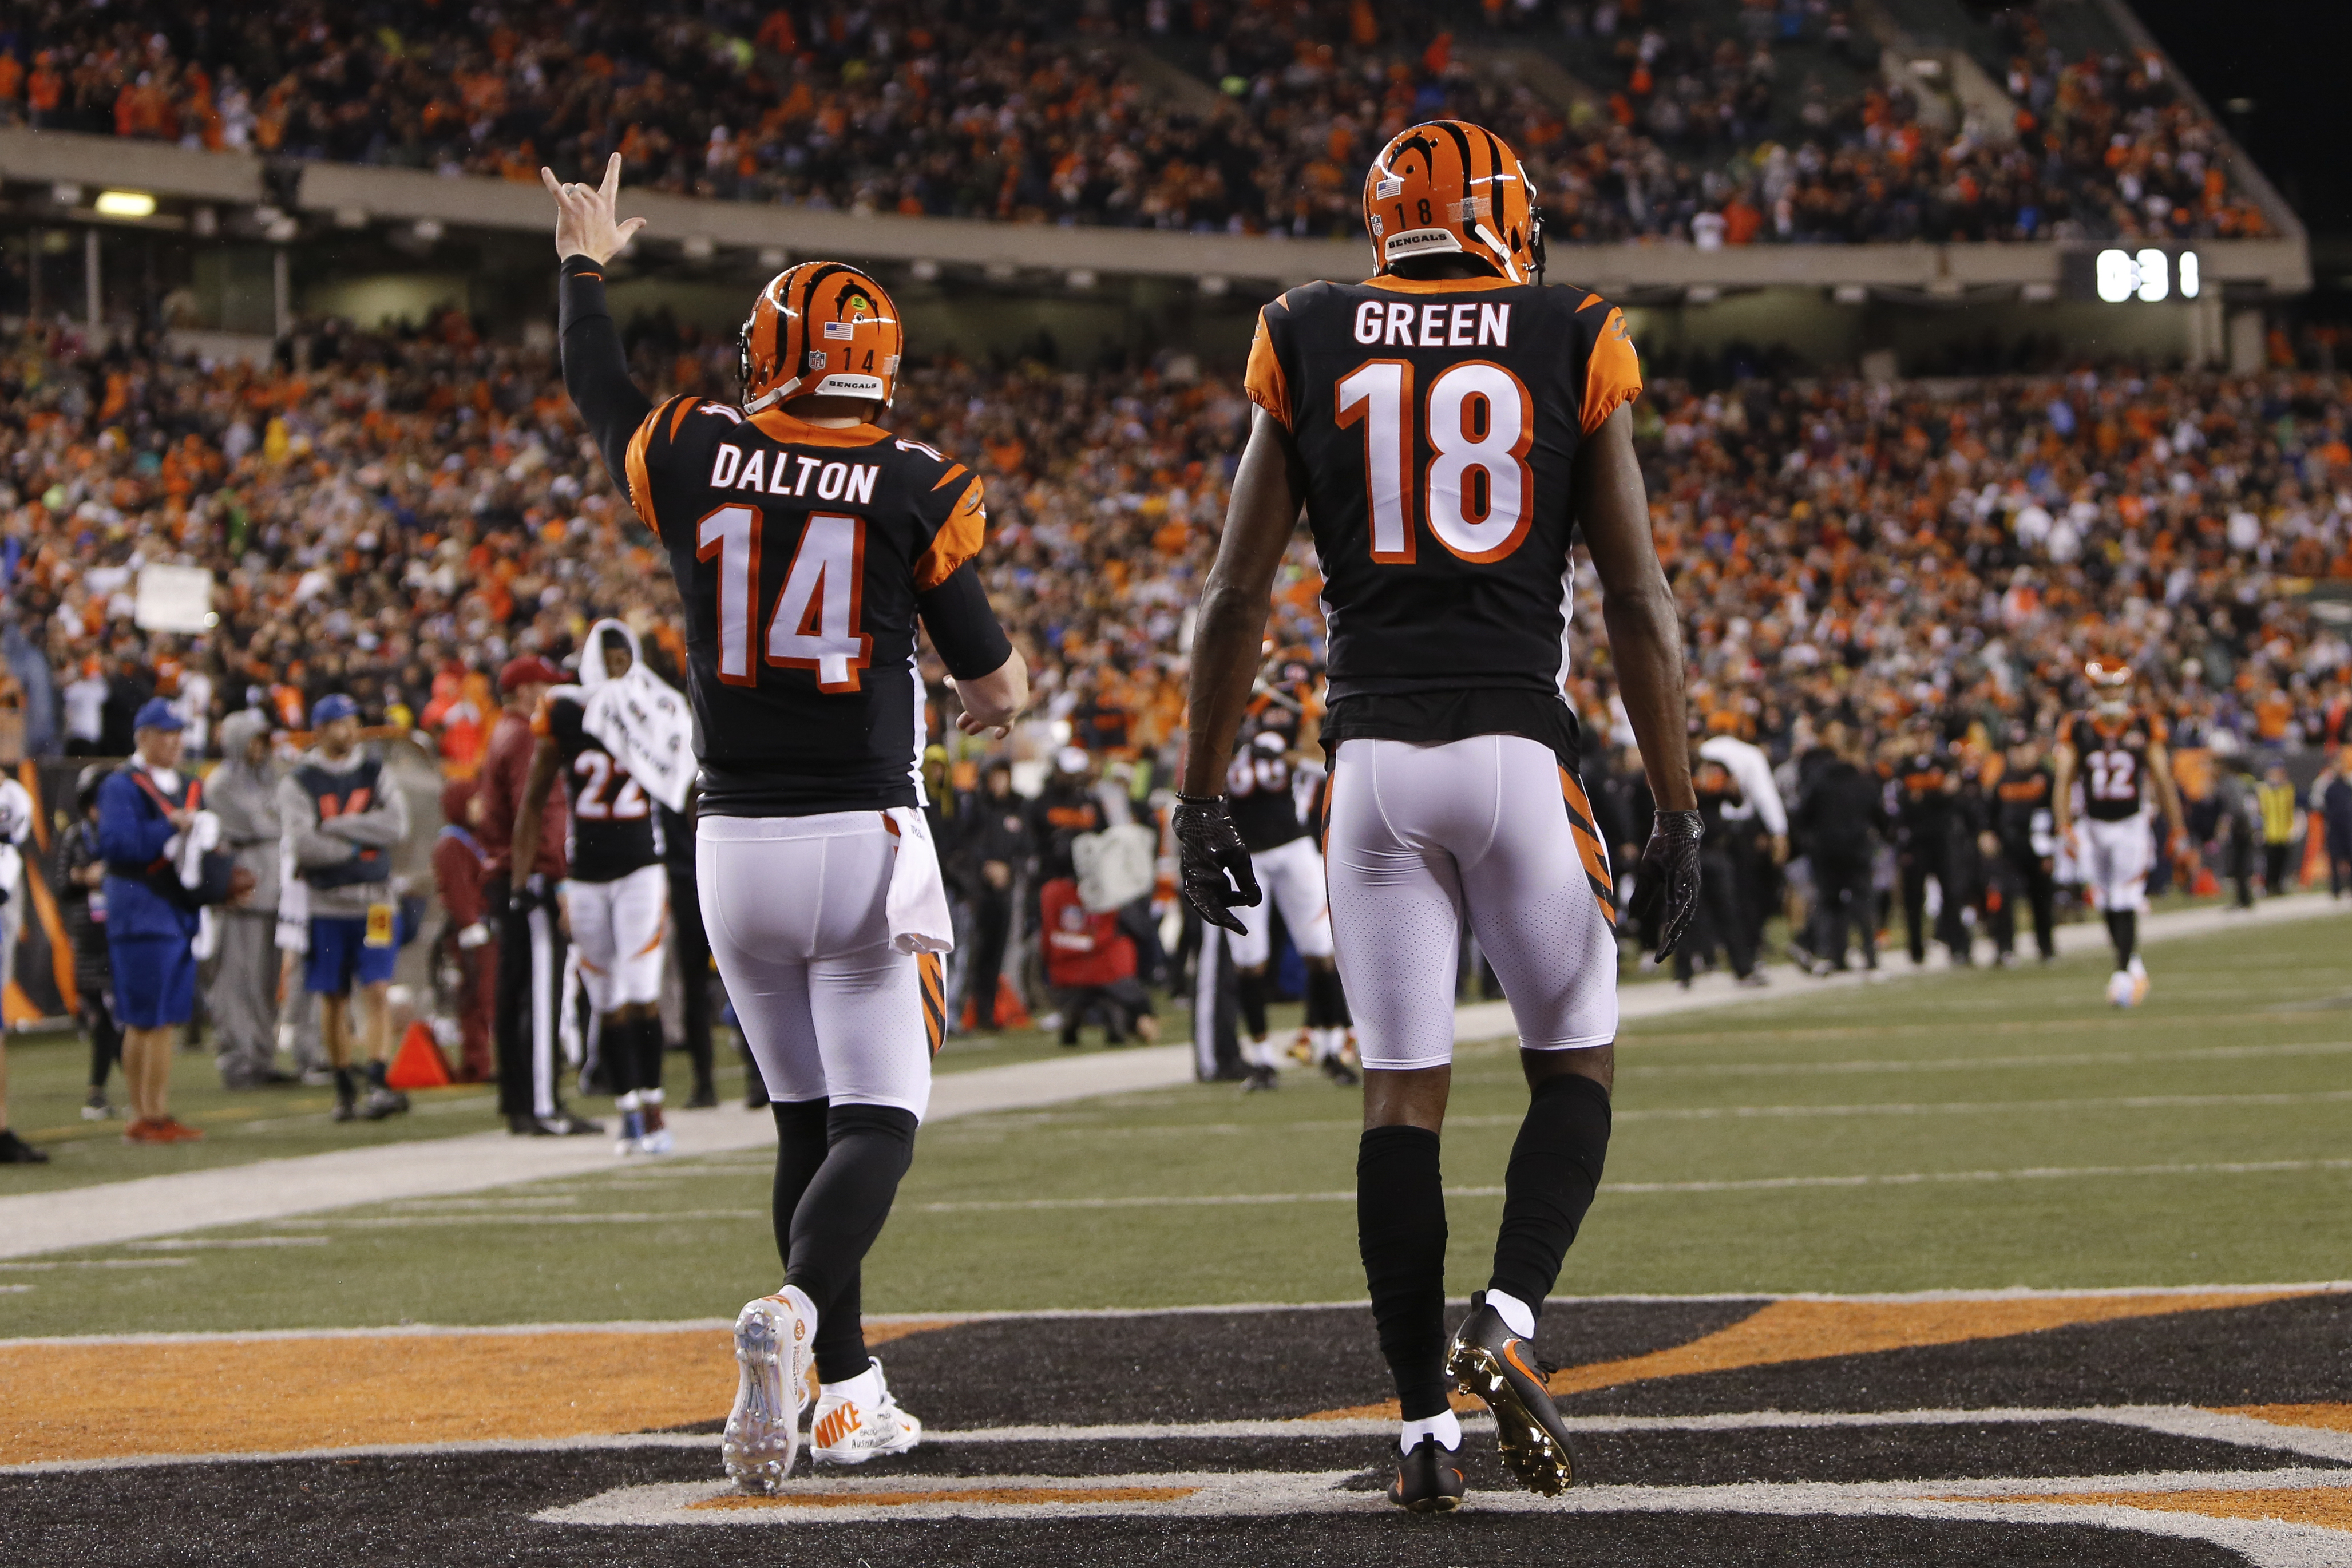 Cincinnati Bengals wide receiver A.J. Green (18) walks back to the sideline with quarterback Andy Dalton (14) after scoring a touchdown in the first half of an NFL football game against the Pittsburgh Steelers, Monday, Dec. 4, 2017, in Cincinnati. (AP Photo/Frank Victores)